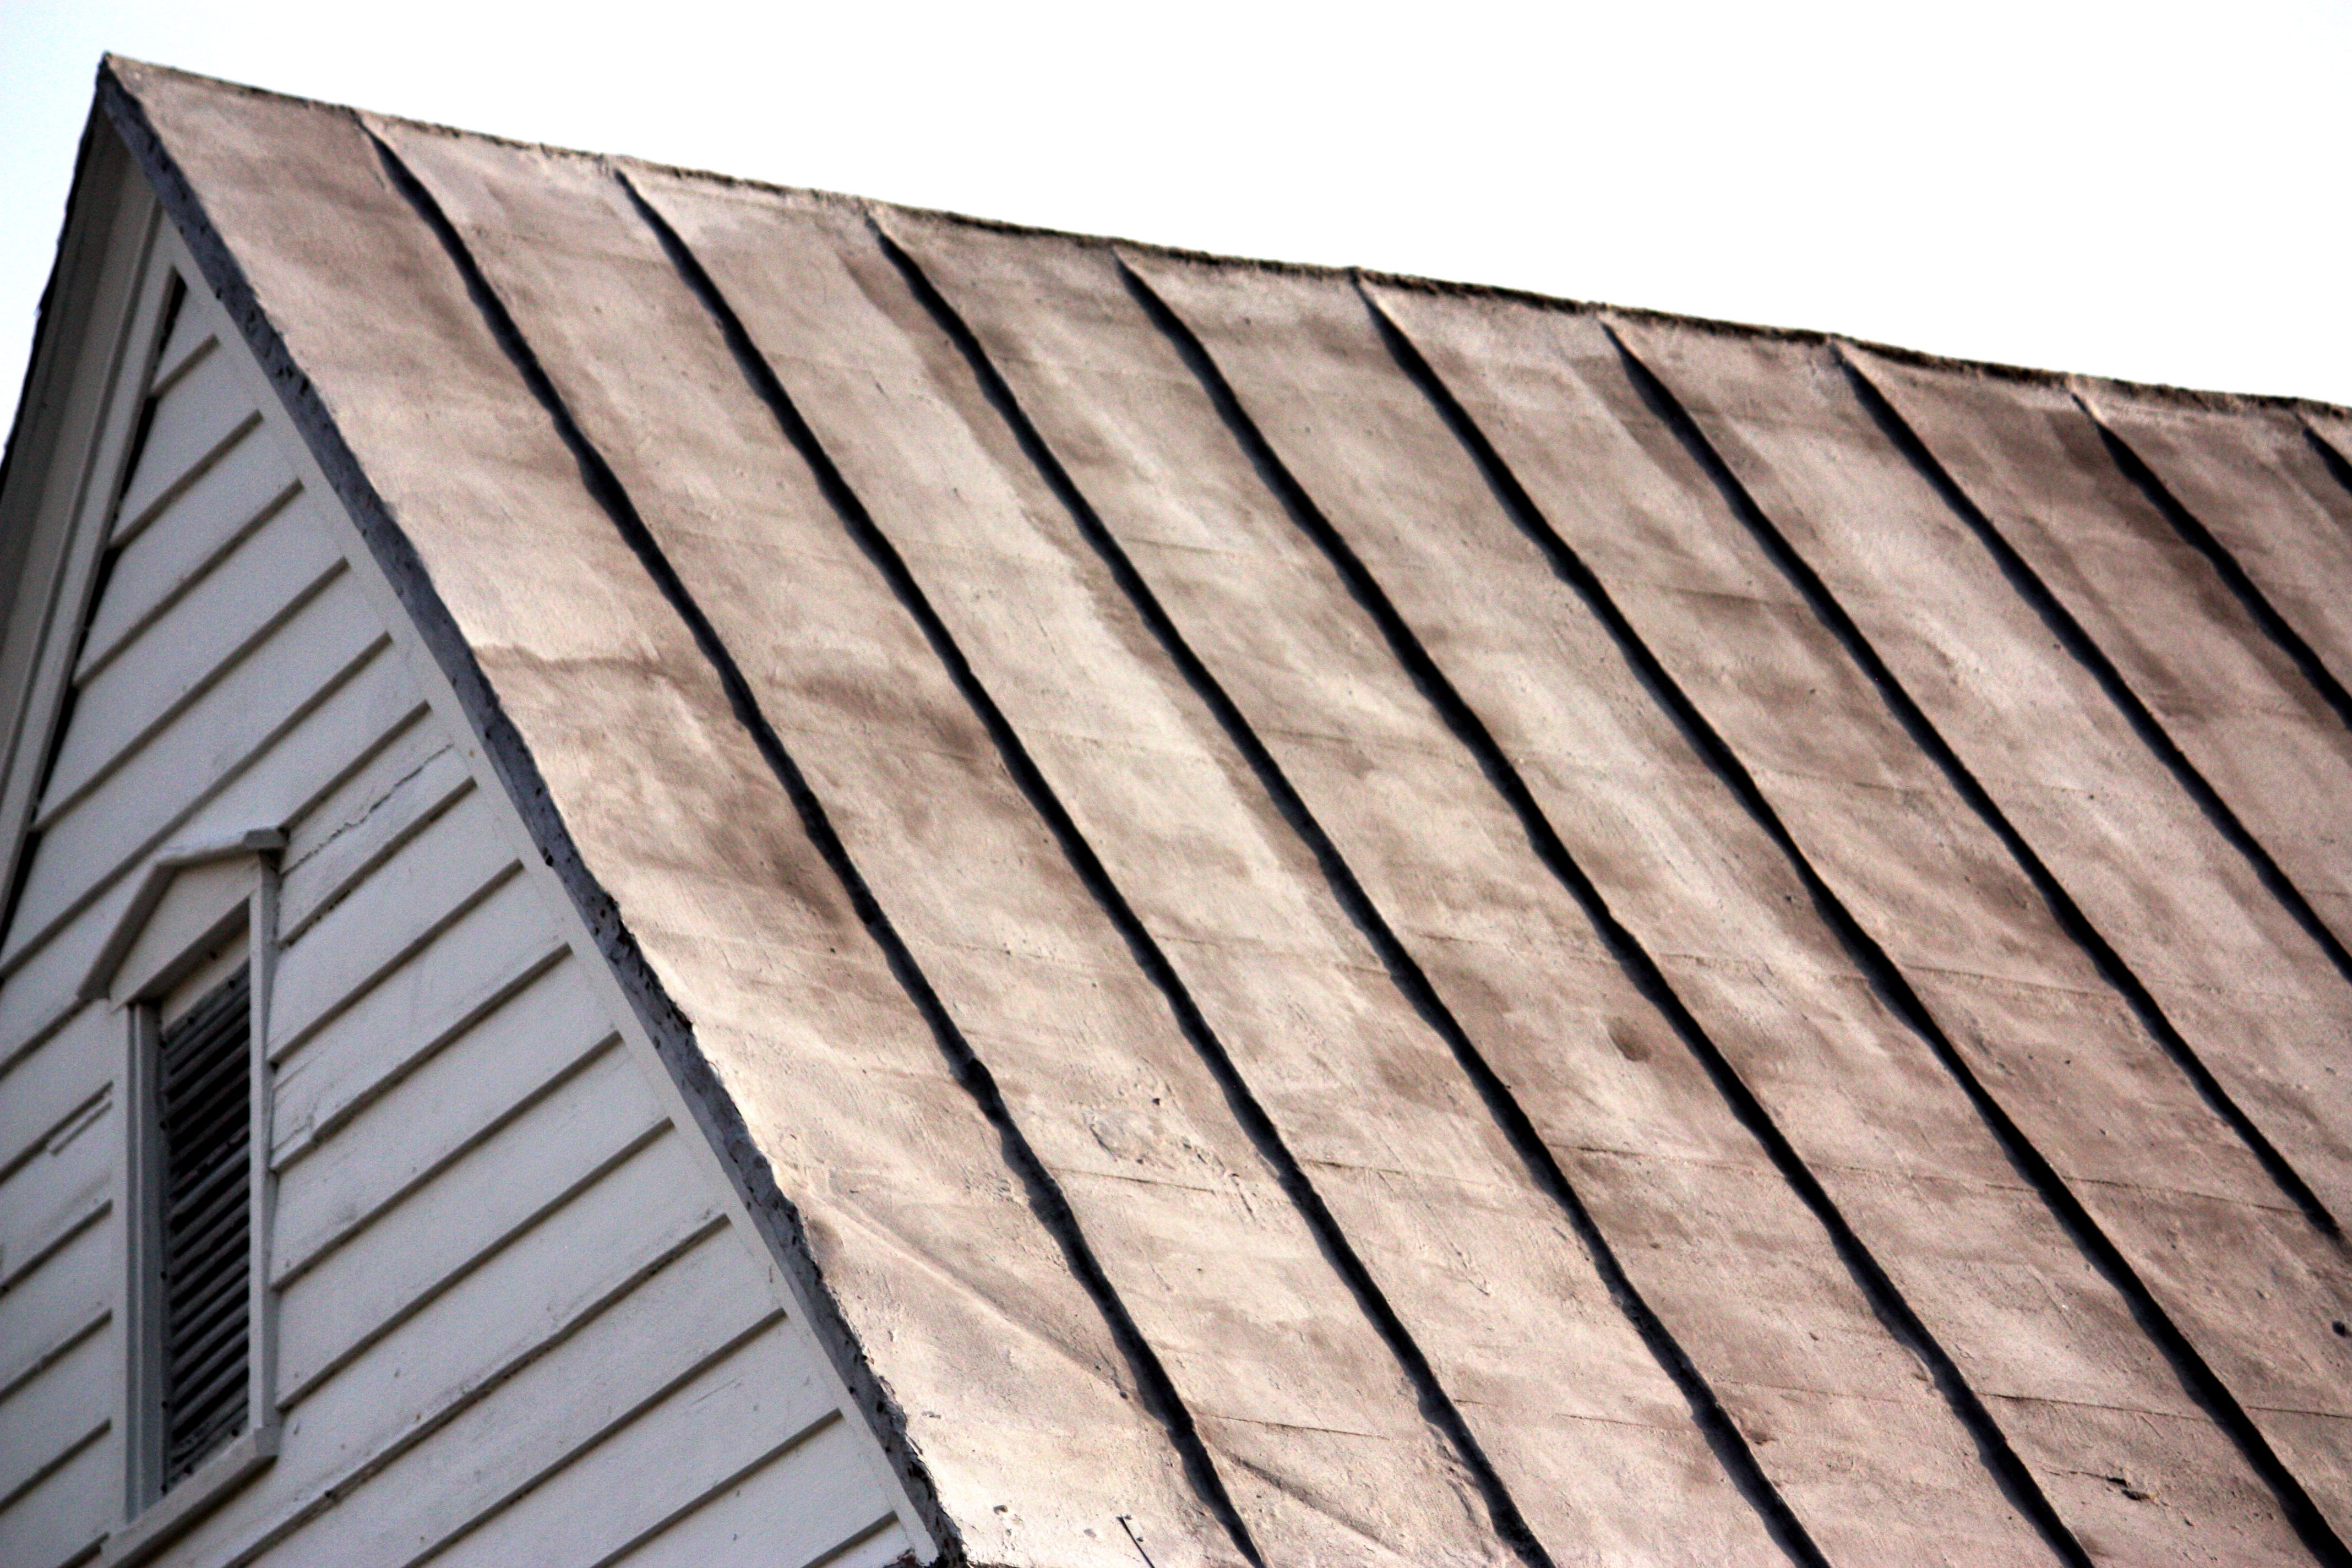 Concrete Roof Concrete Roof Roof Design Roofing